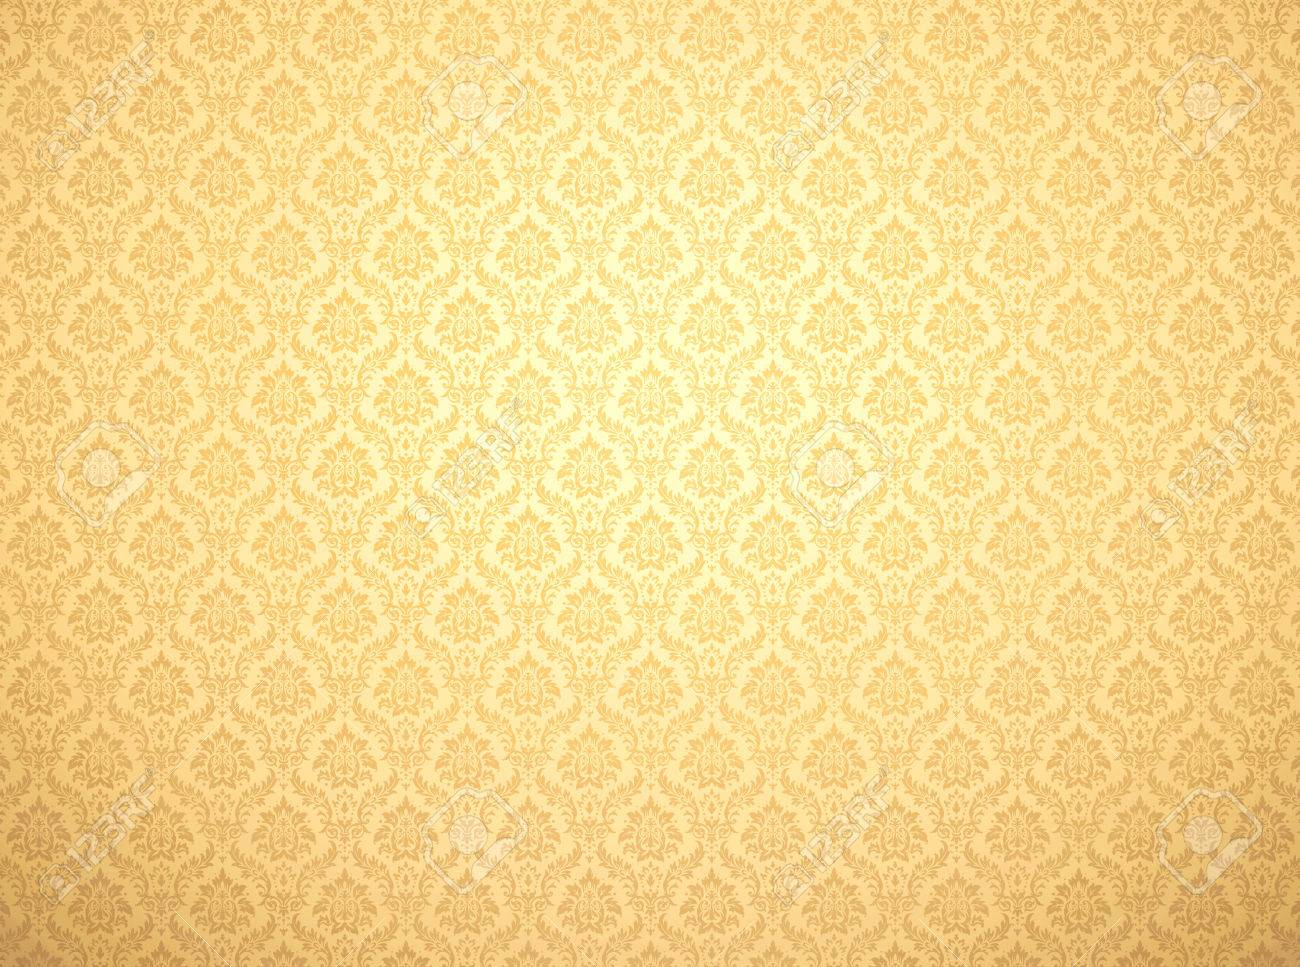 Golden Damask Wallpaper With Floral Patterns Stock Photo Picture